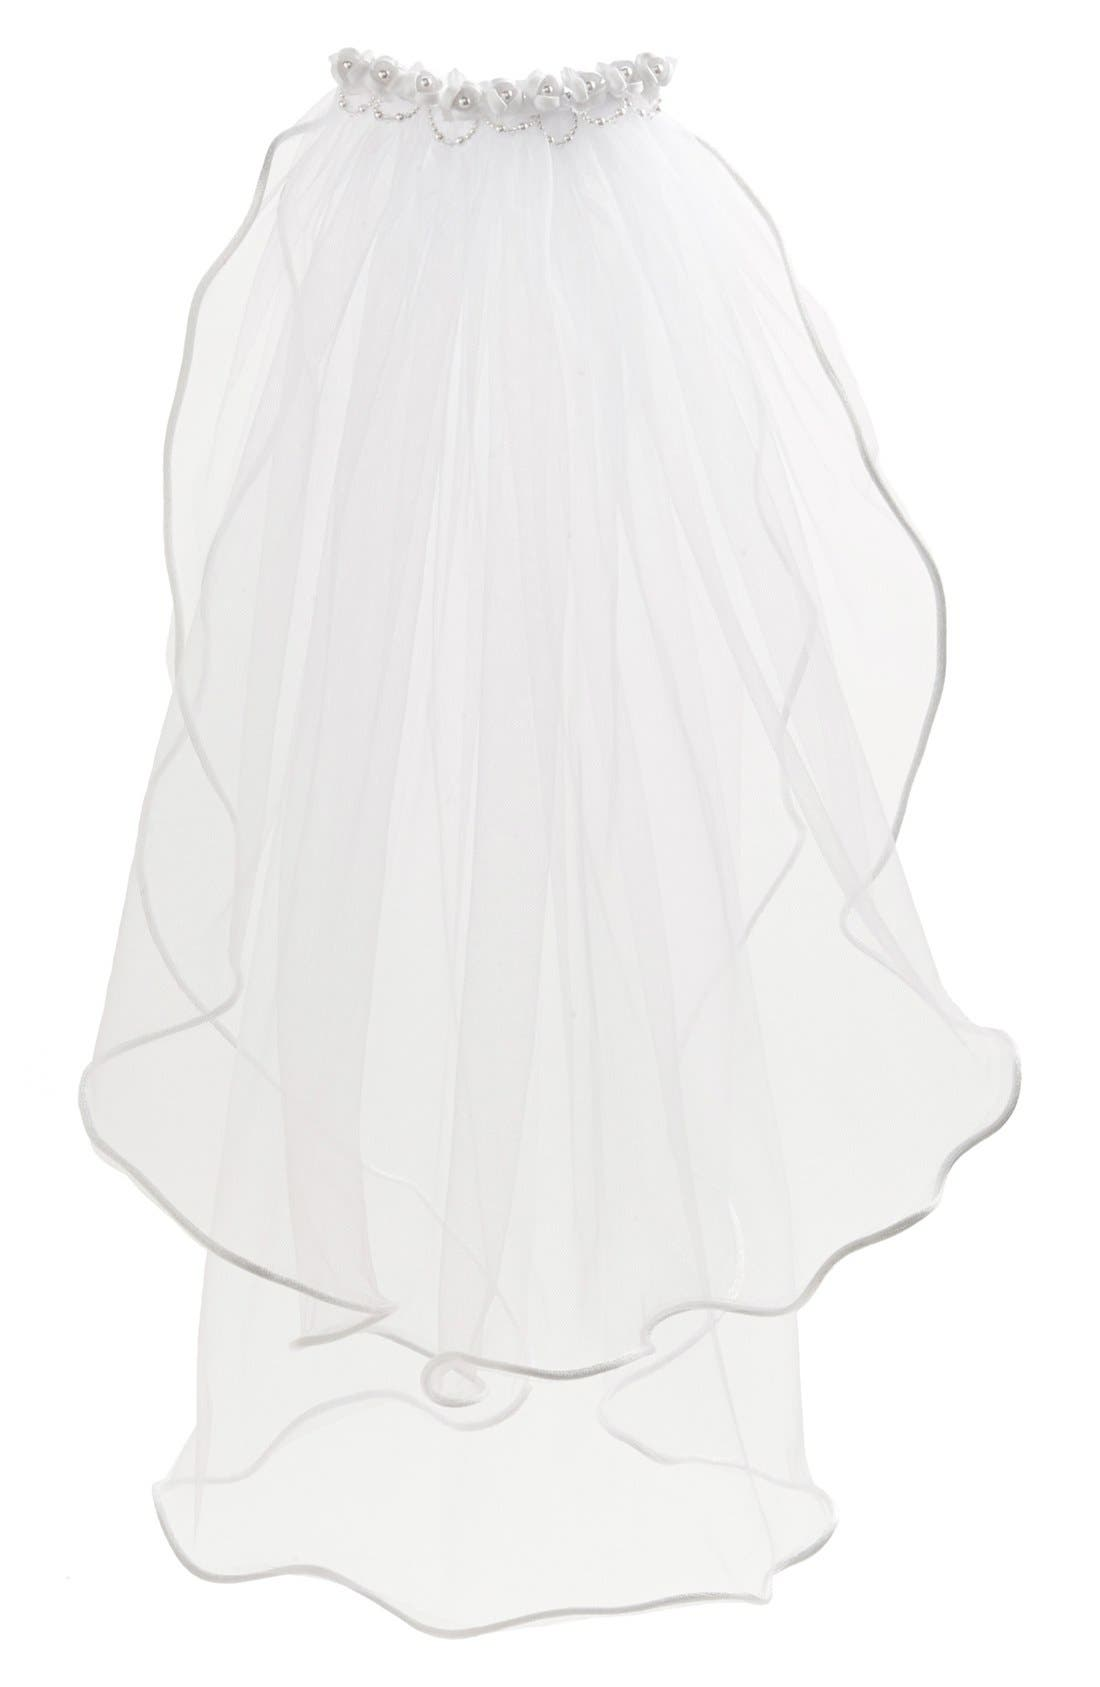 Alternate Image 1 Selected - Lauren Marie First Communion Veil